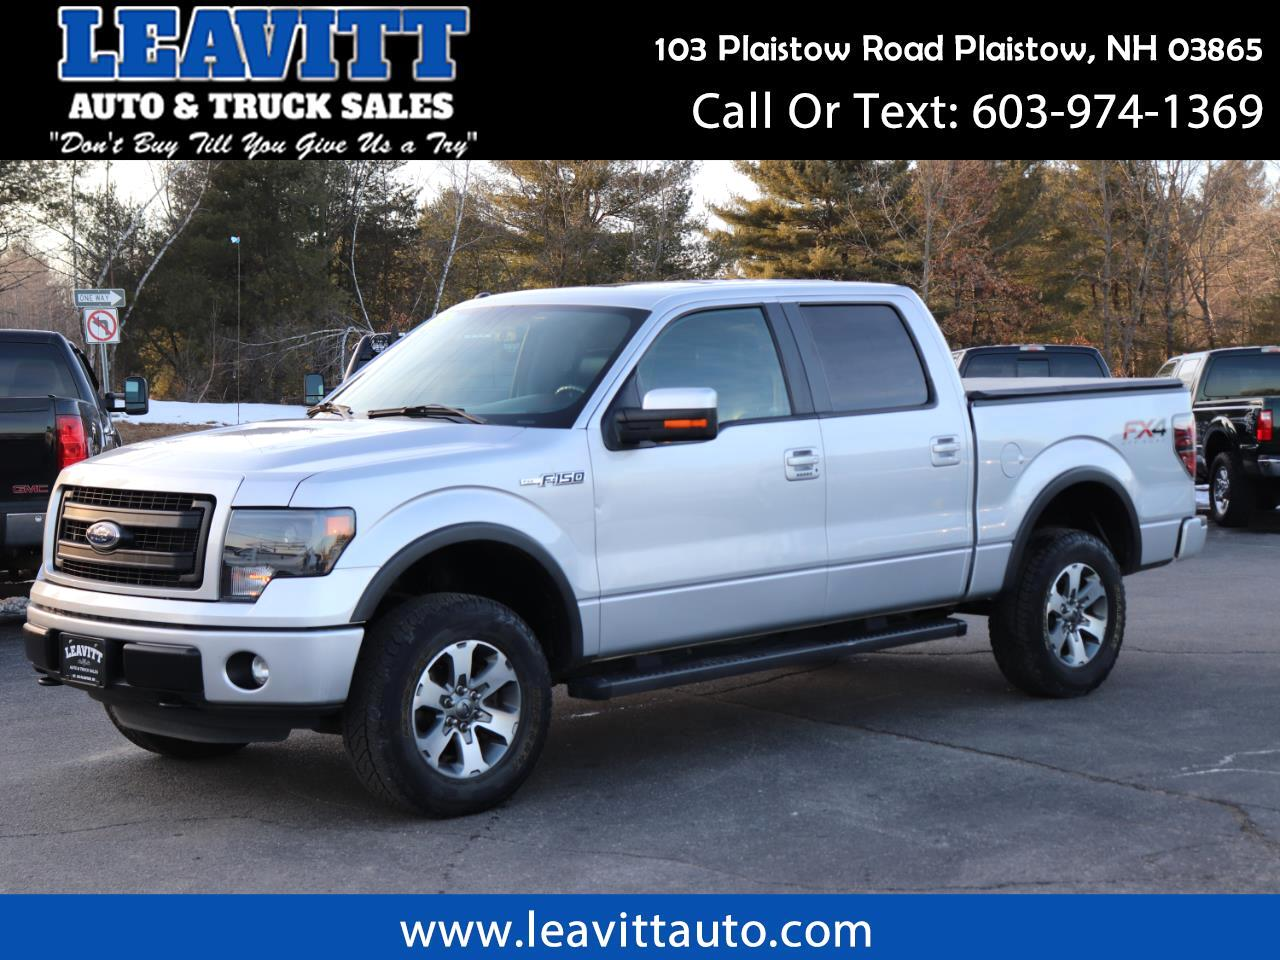 2014 Ford F-150 FX4 SUPERCREW 4X4 62K MILES!!